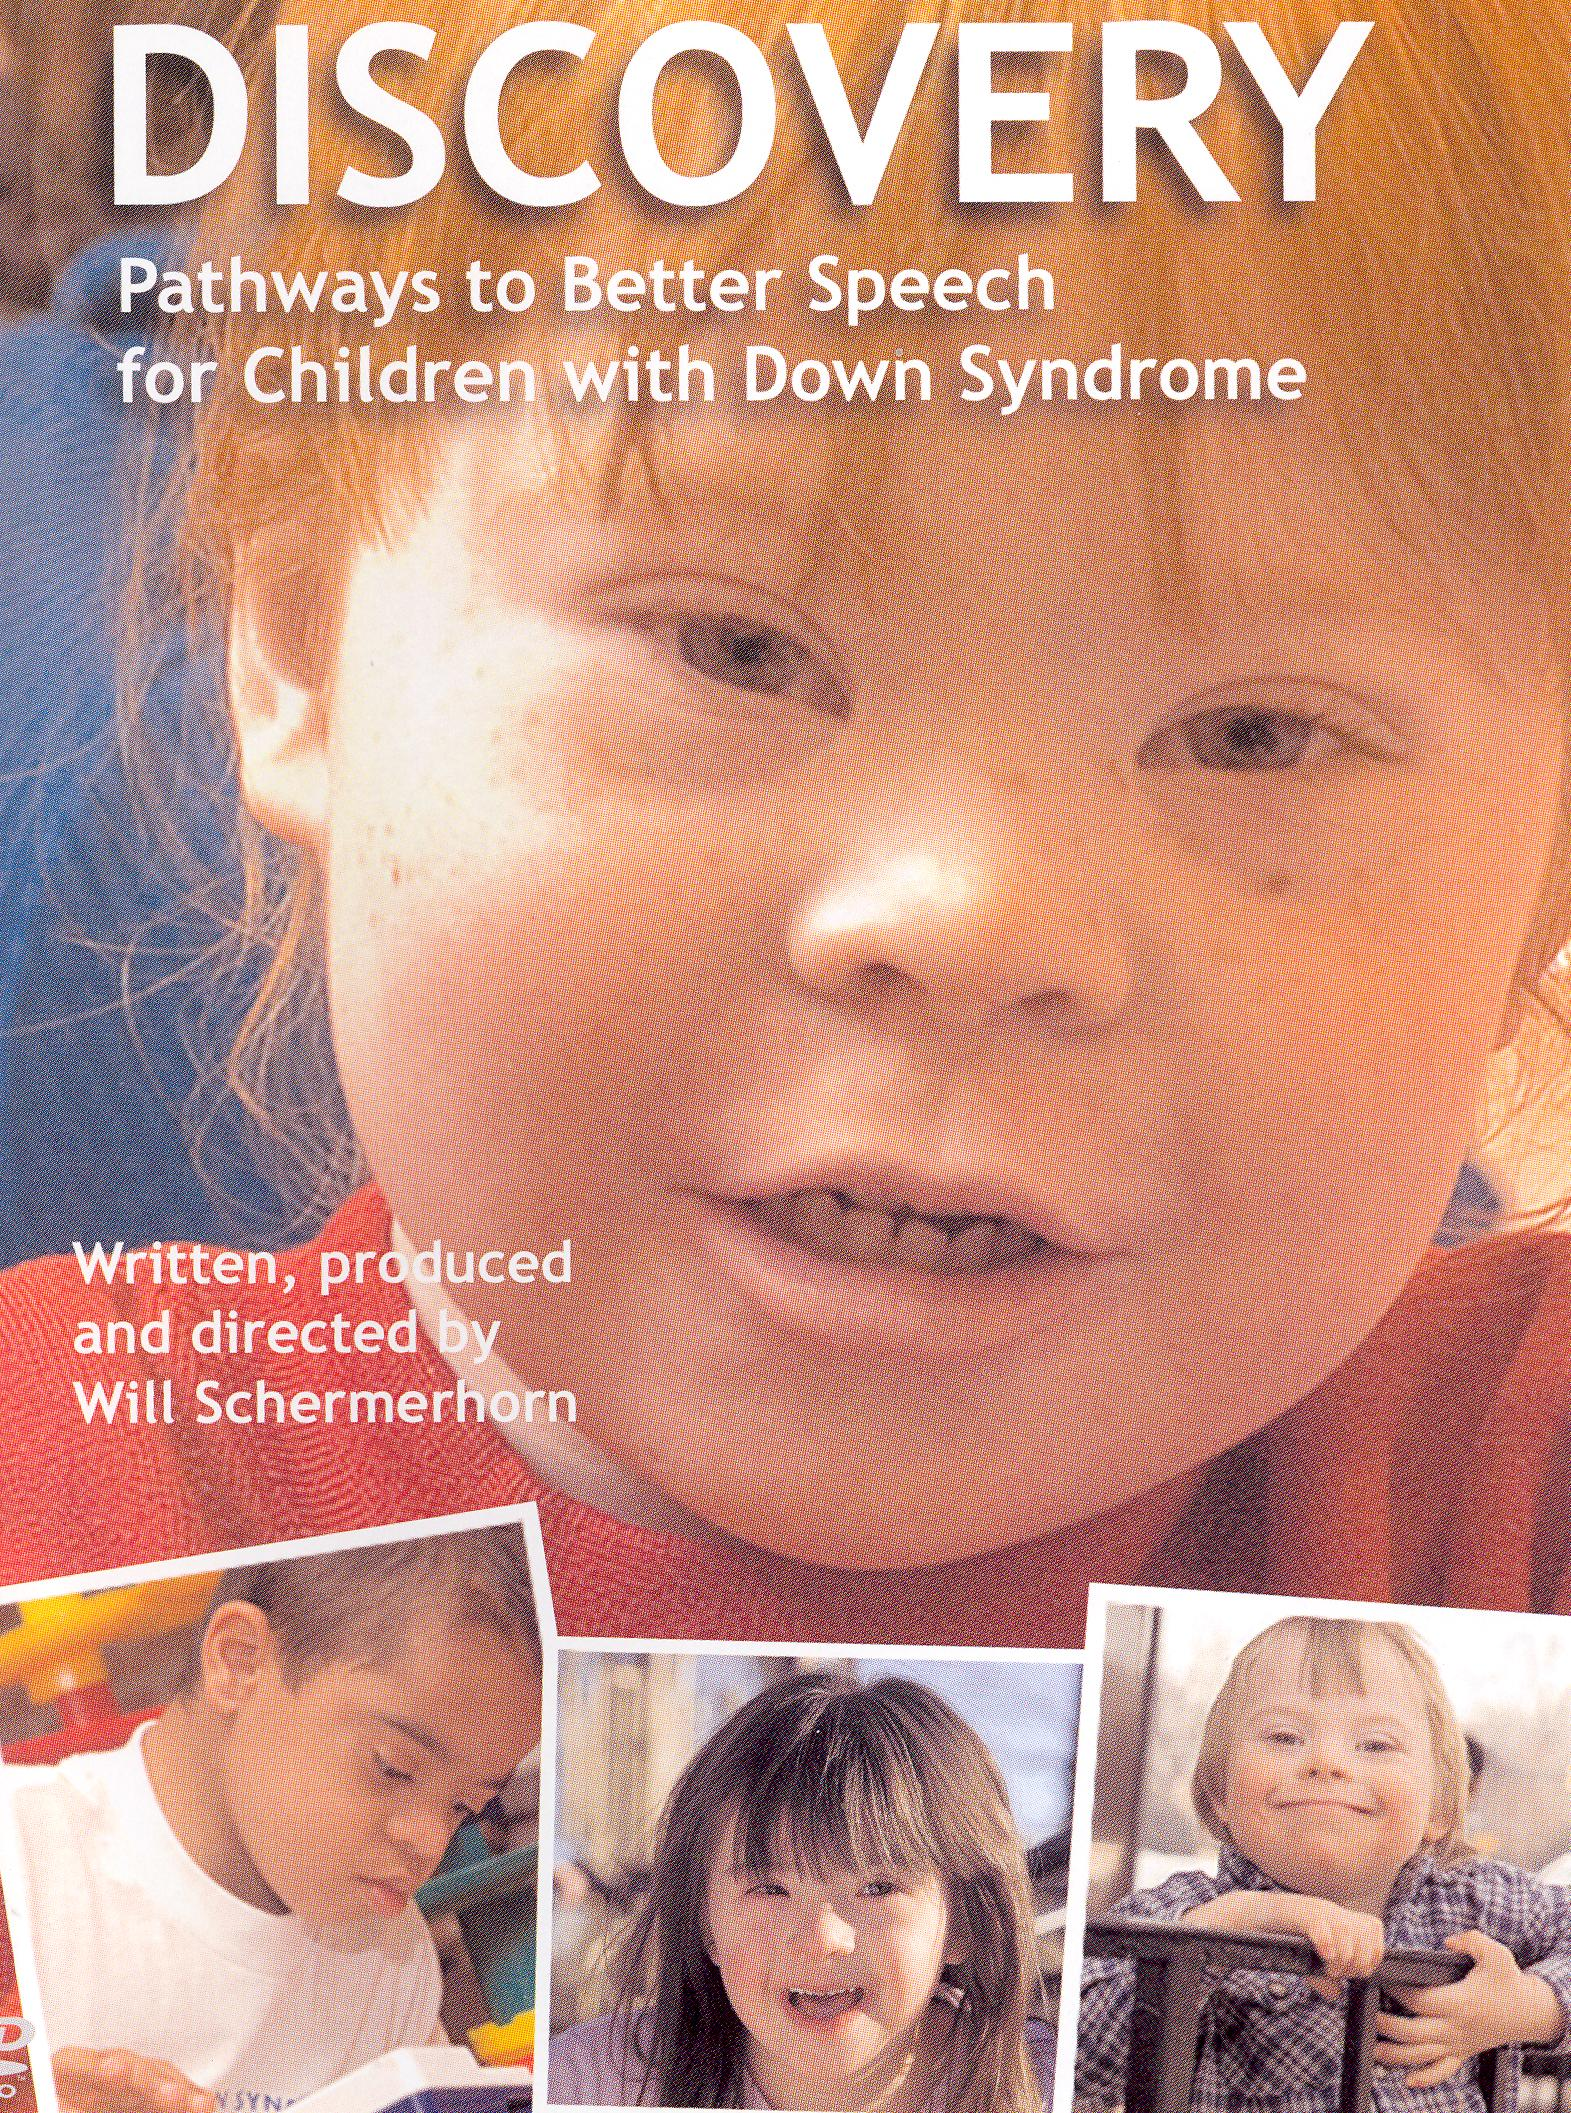 Discovery: Pathways to Better Speech for Children with Down Syndrome